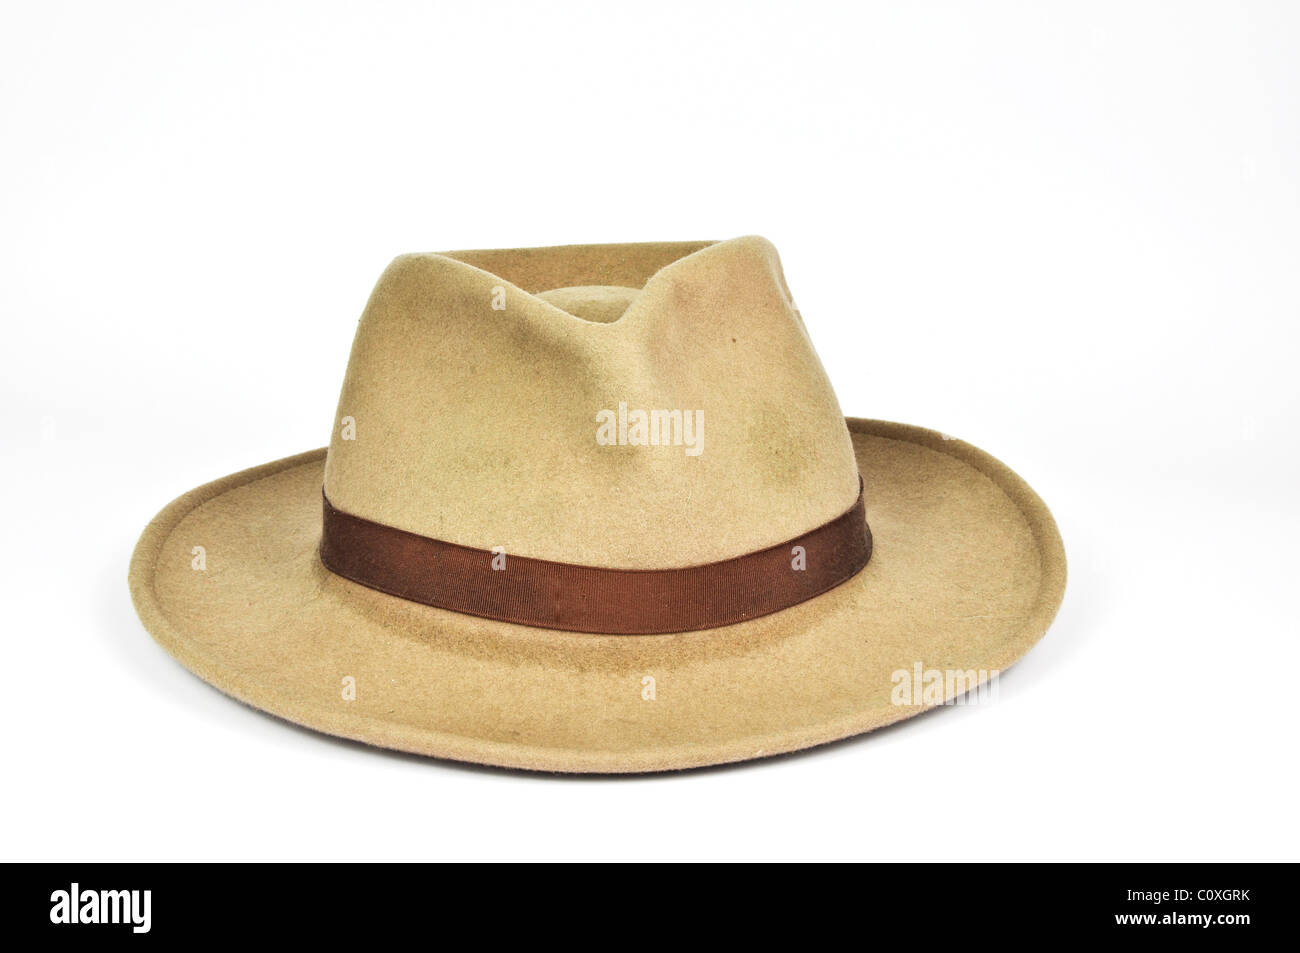 photo old used stetson cowboy hat on white - Stock Image